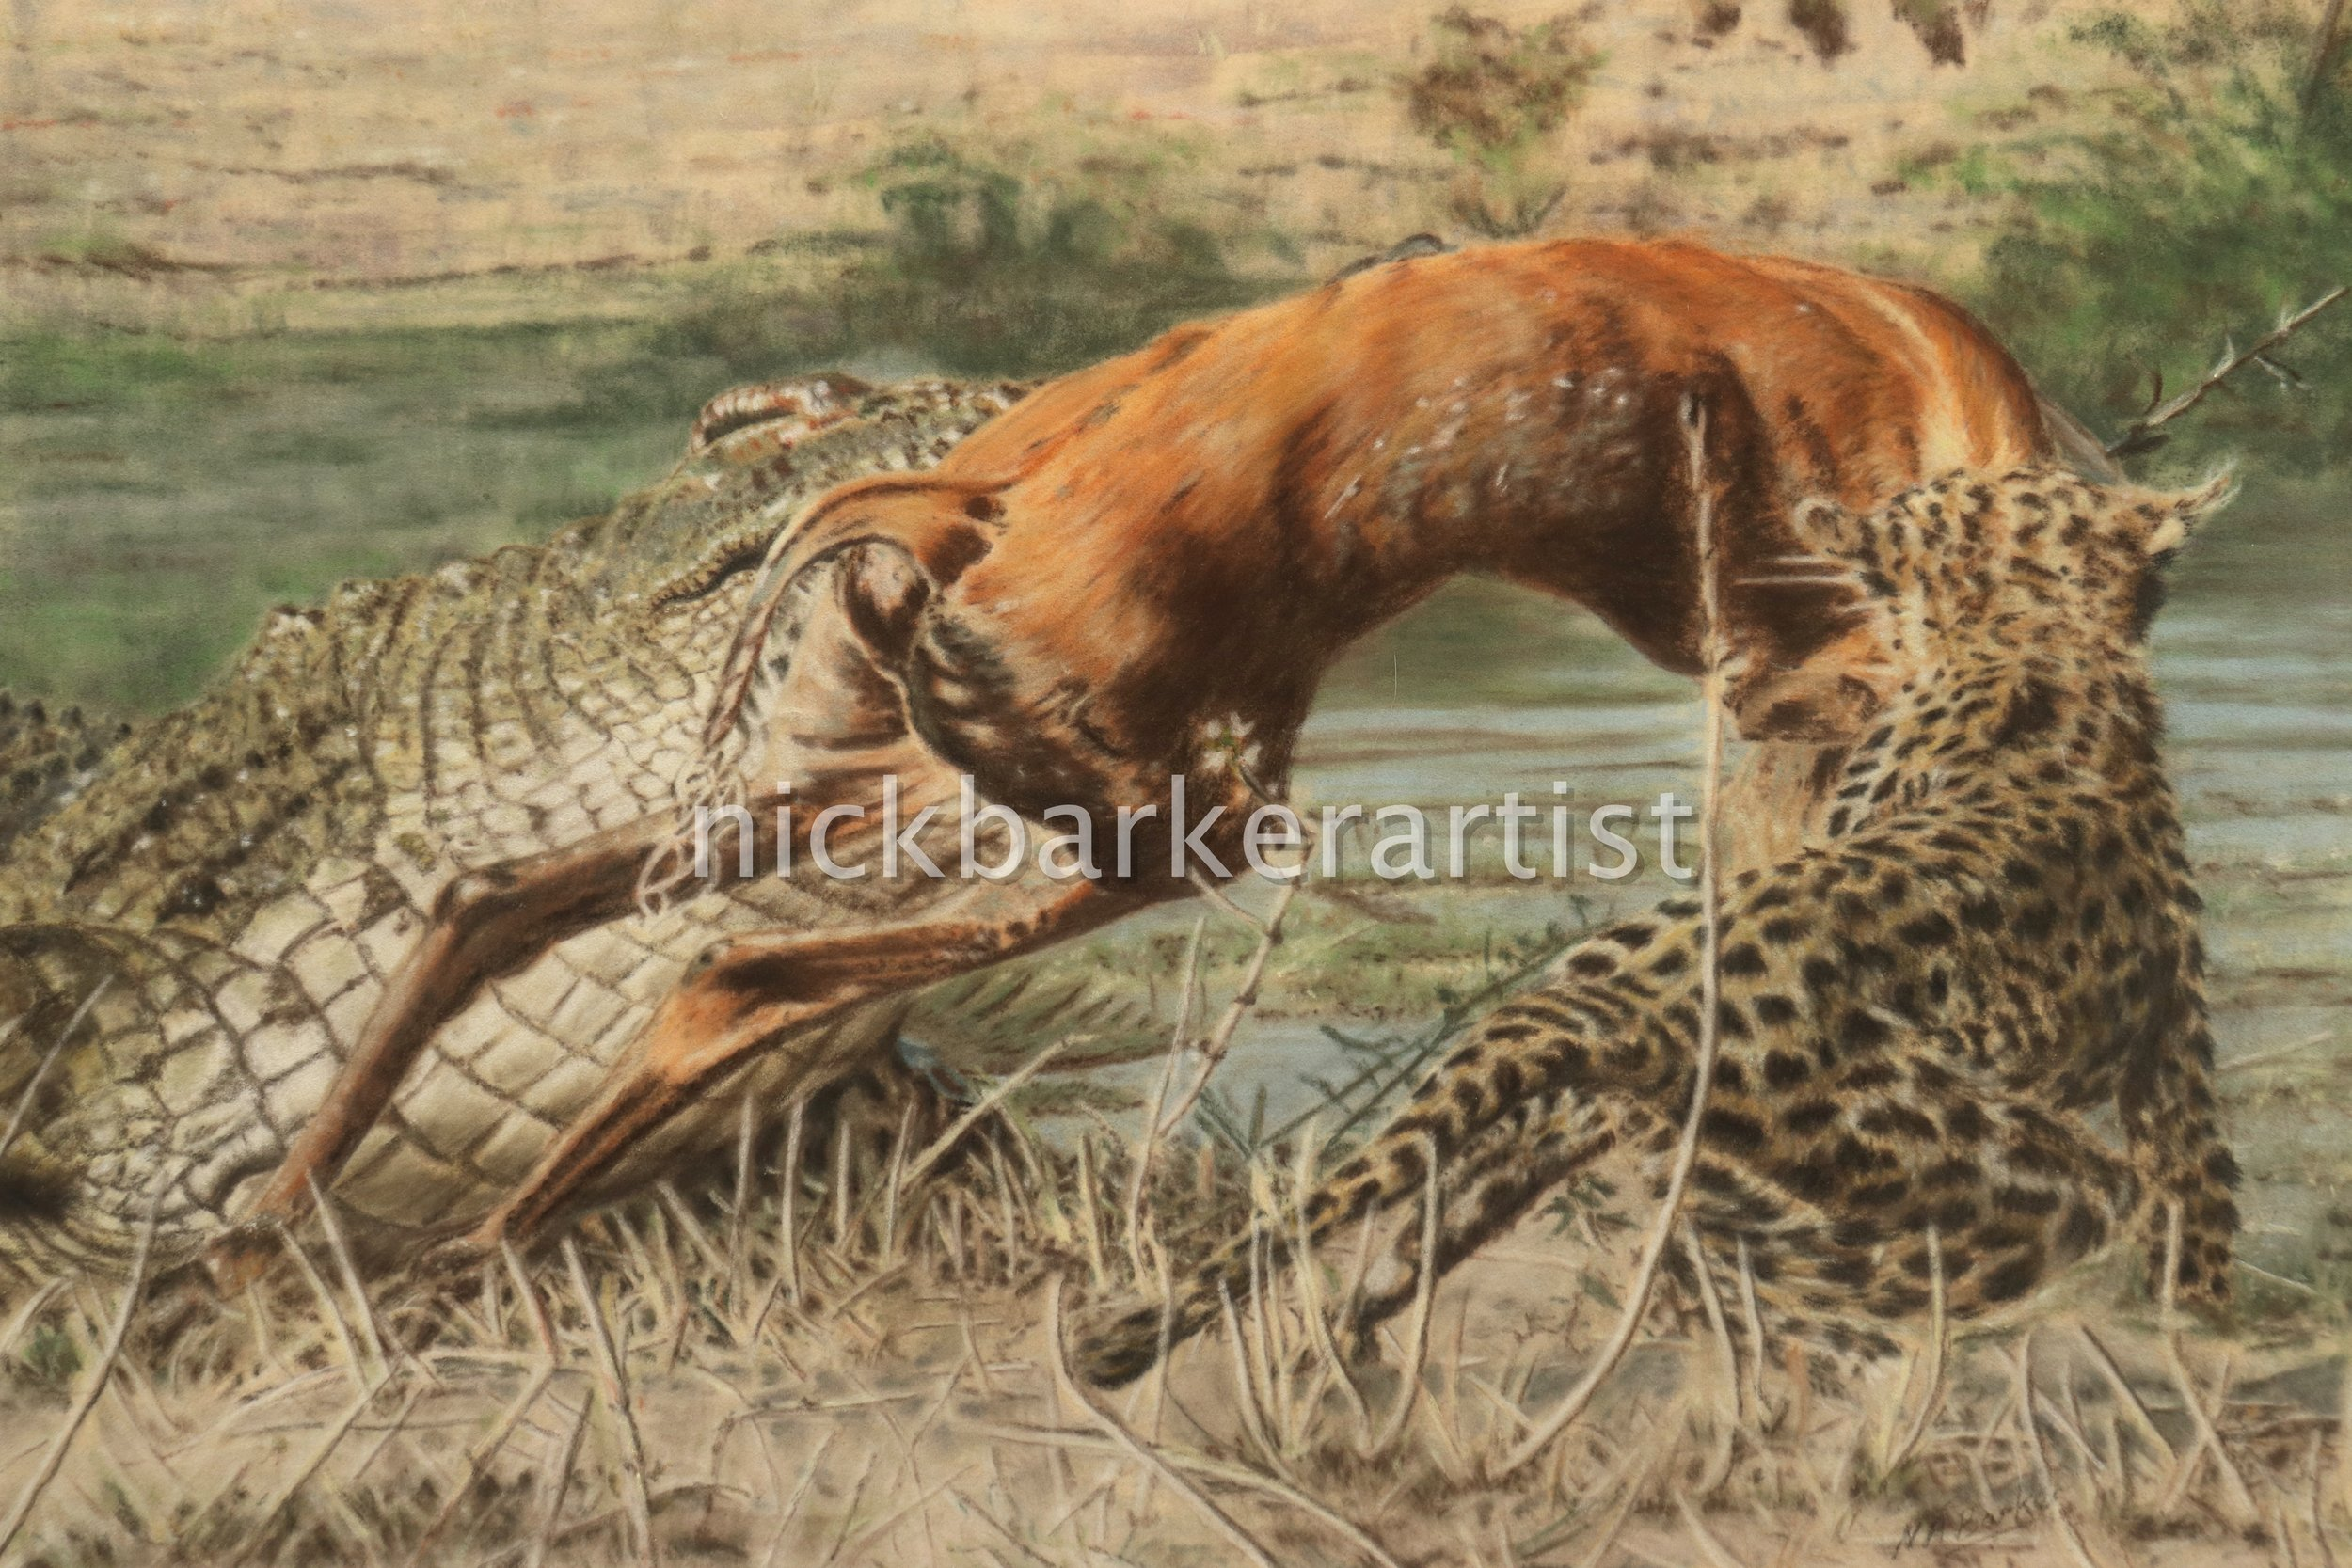 'Winner Takes All' By Nick Barker - Pastel - 29cm x 37cm - £2,000 (inc frame)